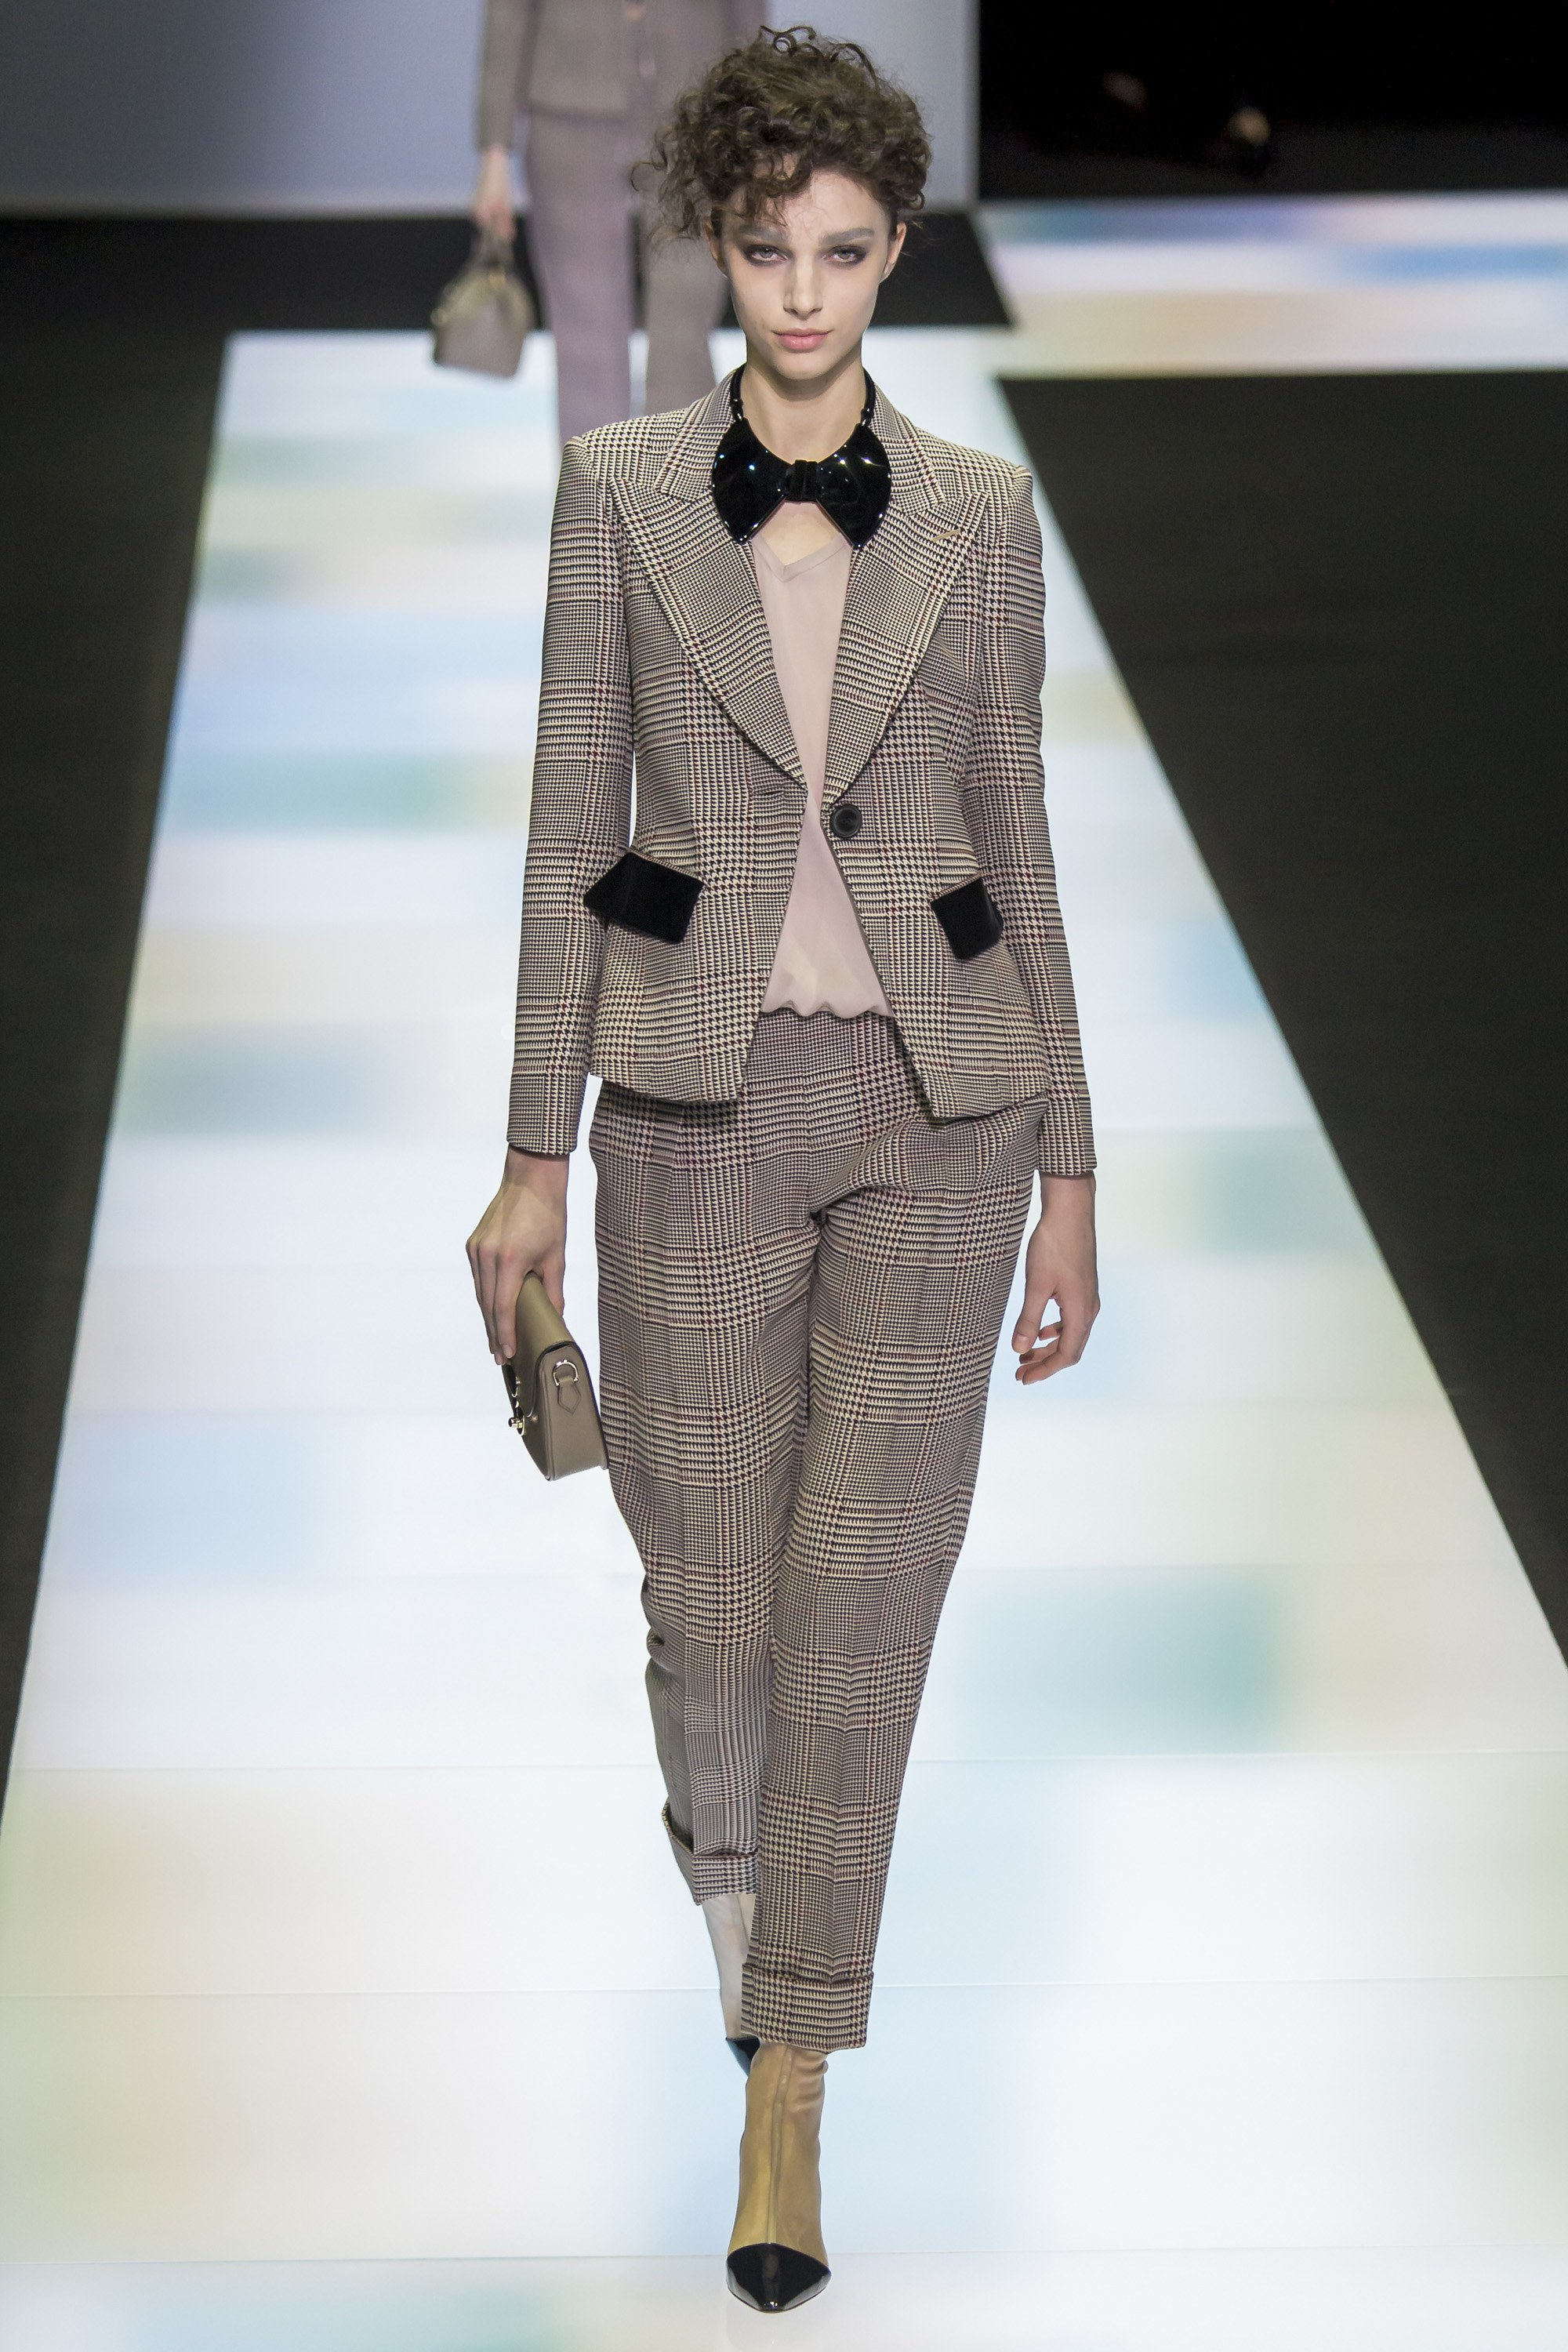 WOOL LAB TRENDS  ANDROGYNE - Maglifico - Blog - Repubblica.it 7d0a6789eac3